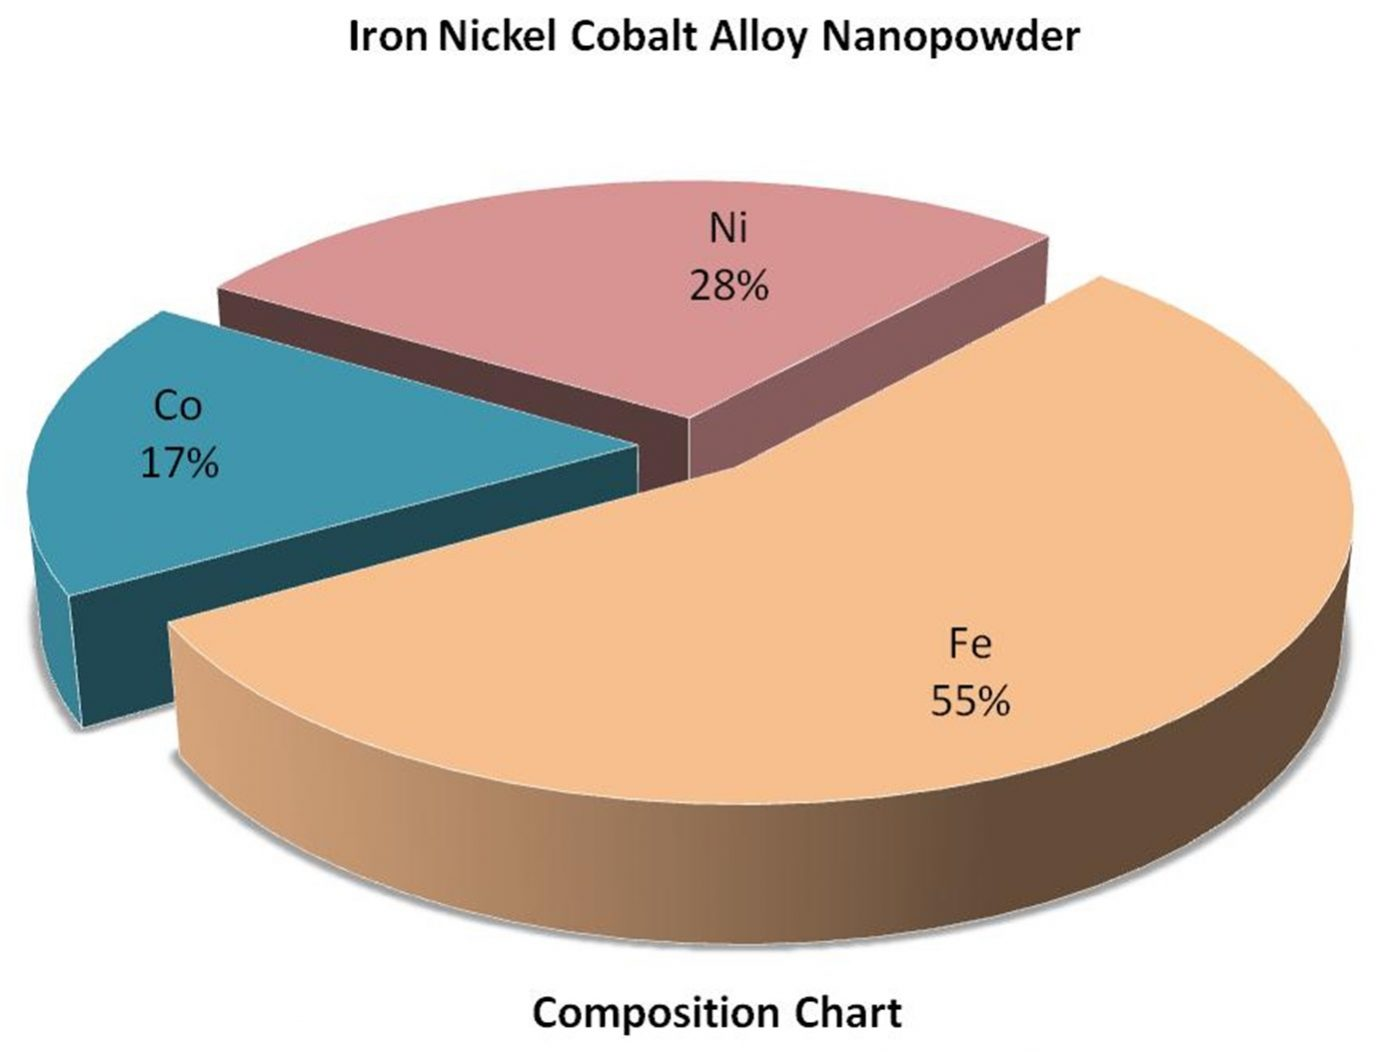 Composition Chart - Fe:Ni:Co Alloy Nanoparticles